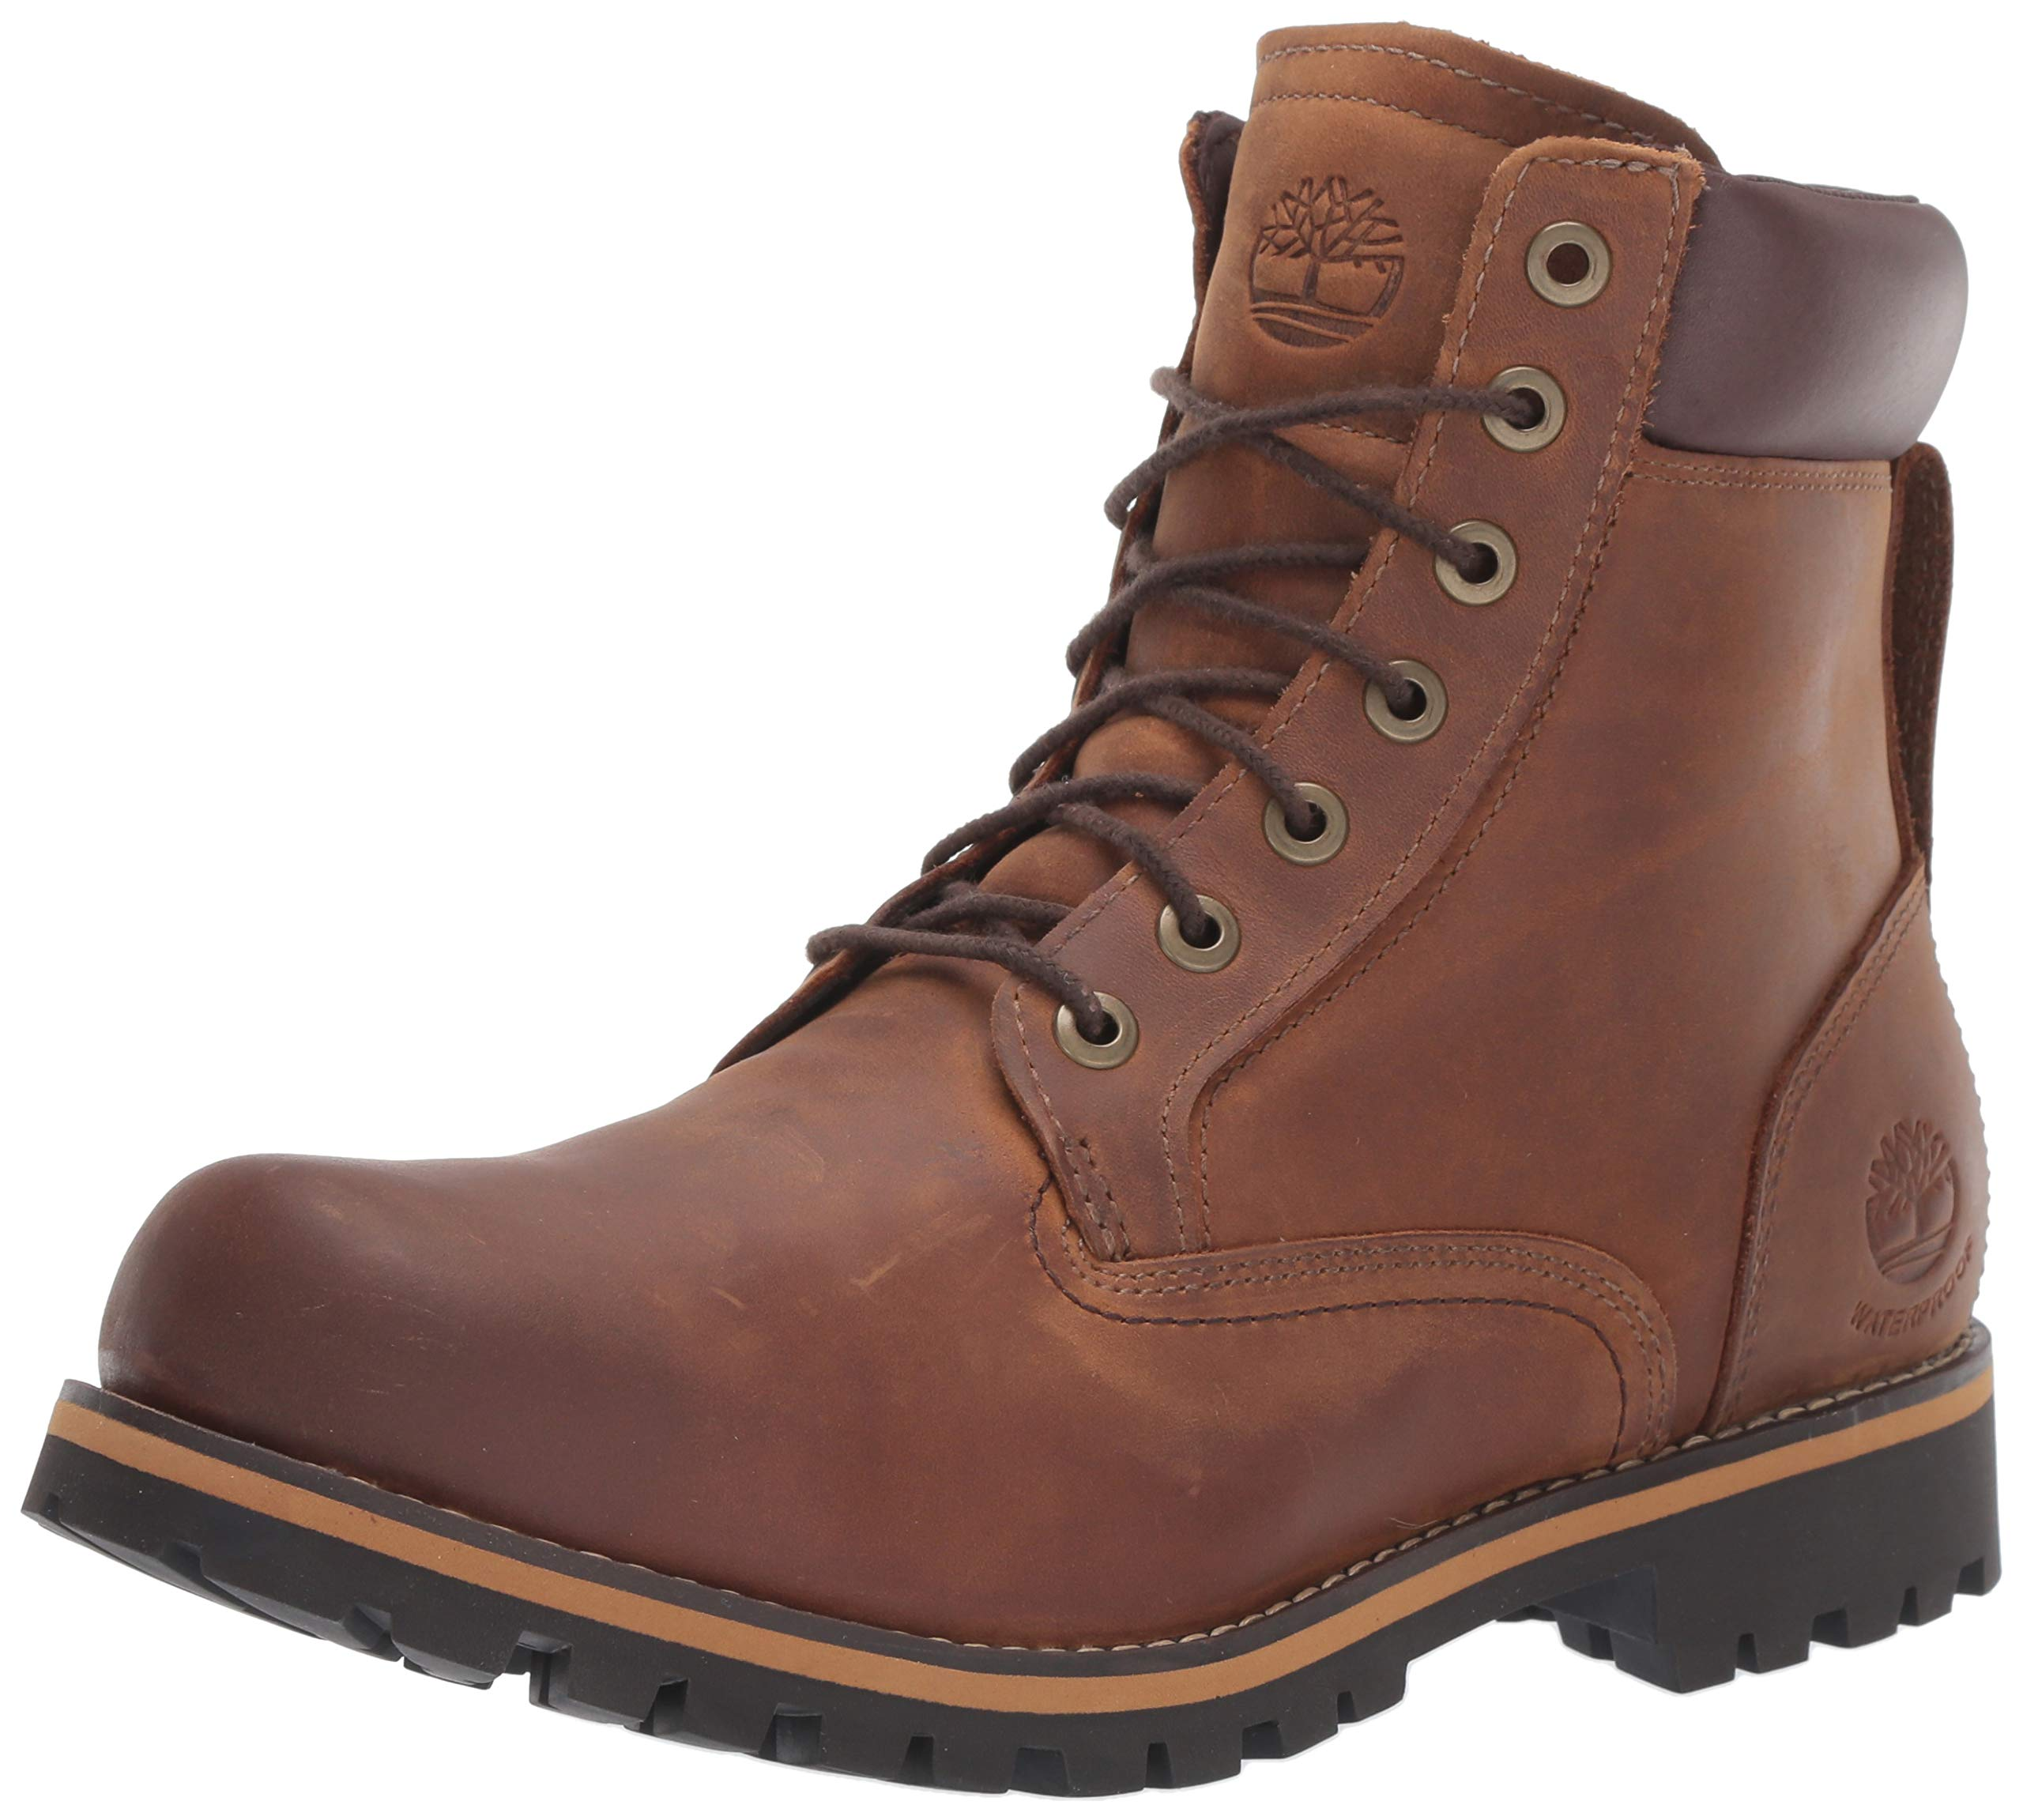 Timberland Men's Earthkeepers Rugged Boot, Medium brown full grain, 7.5 M US